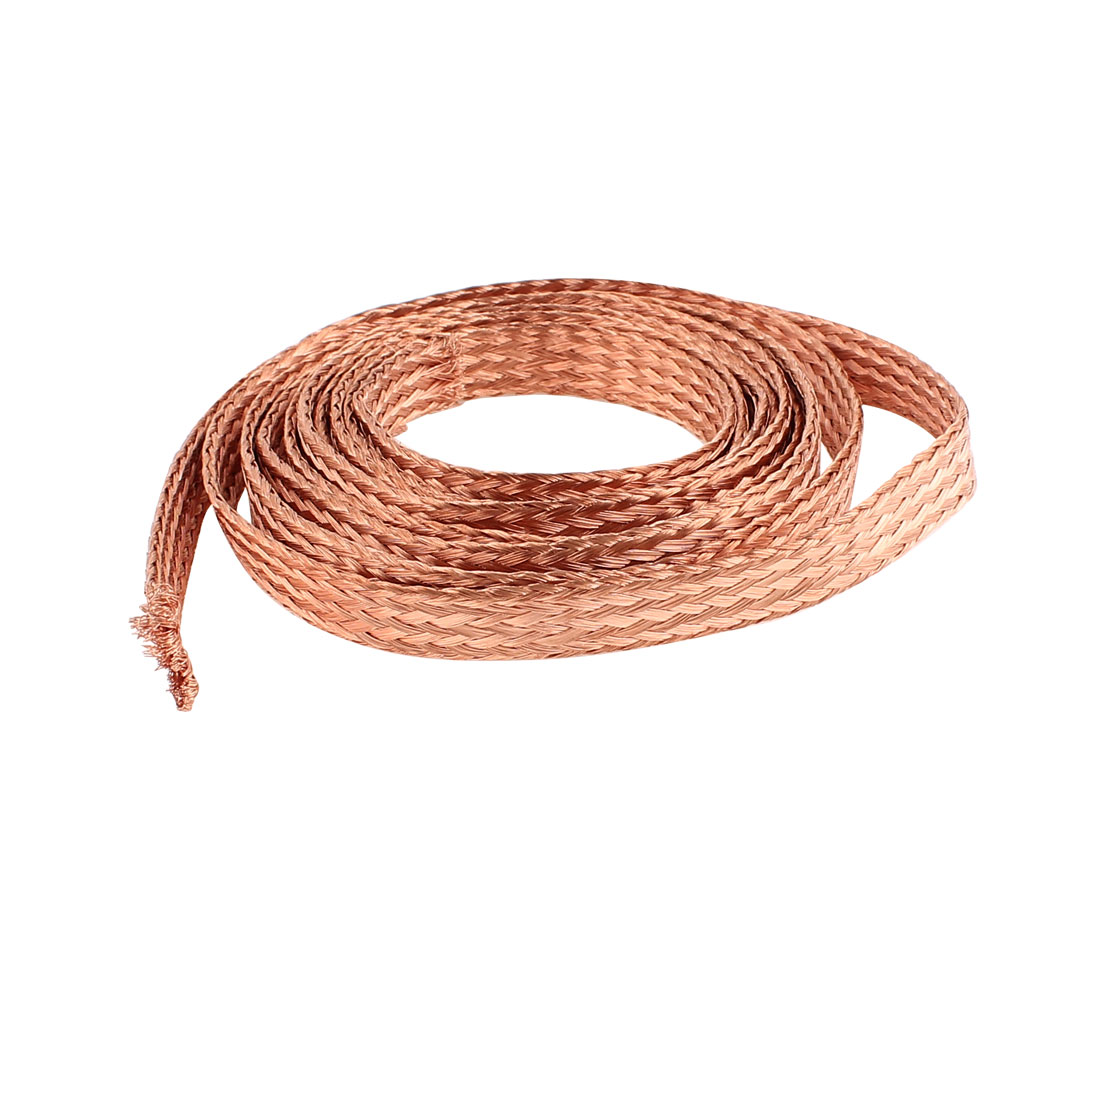 6 Square Millimeter Thickness 2M Length Flat Electrical Bare Braided Copper Wire